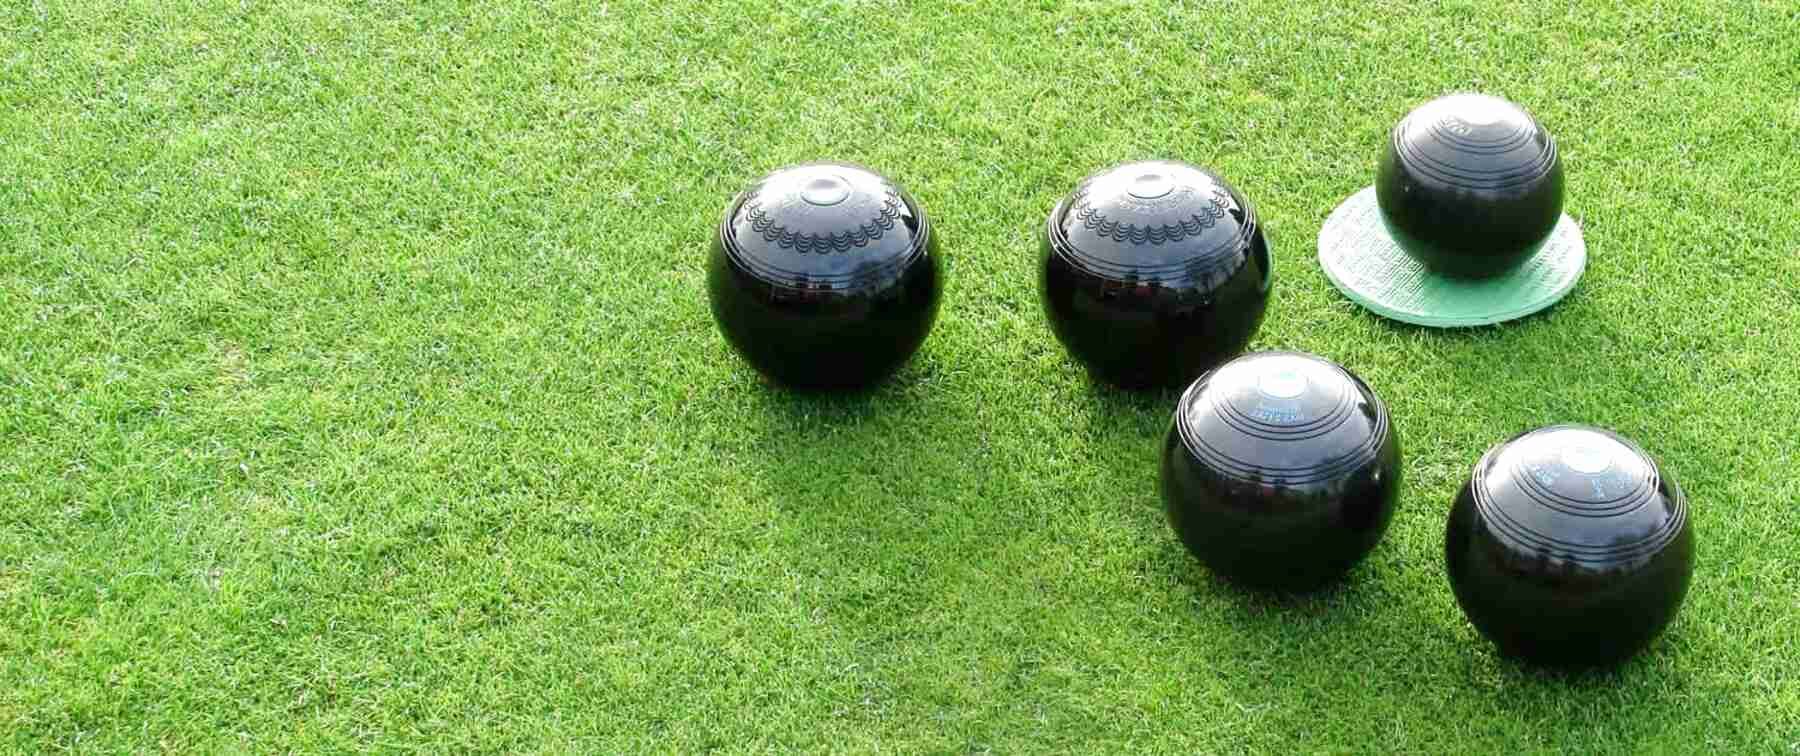 crown green bowls for sale